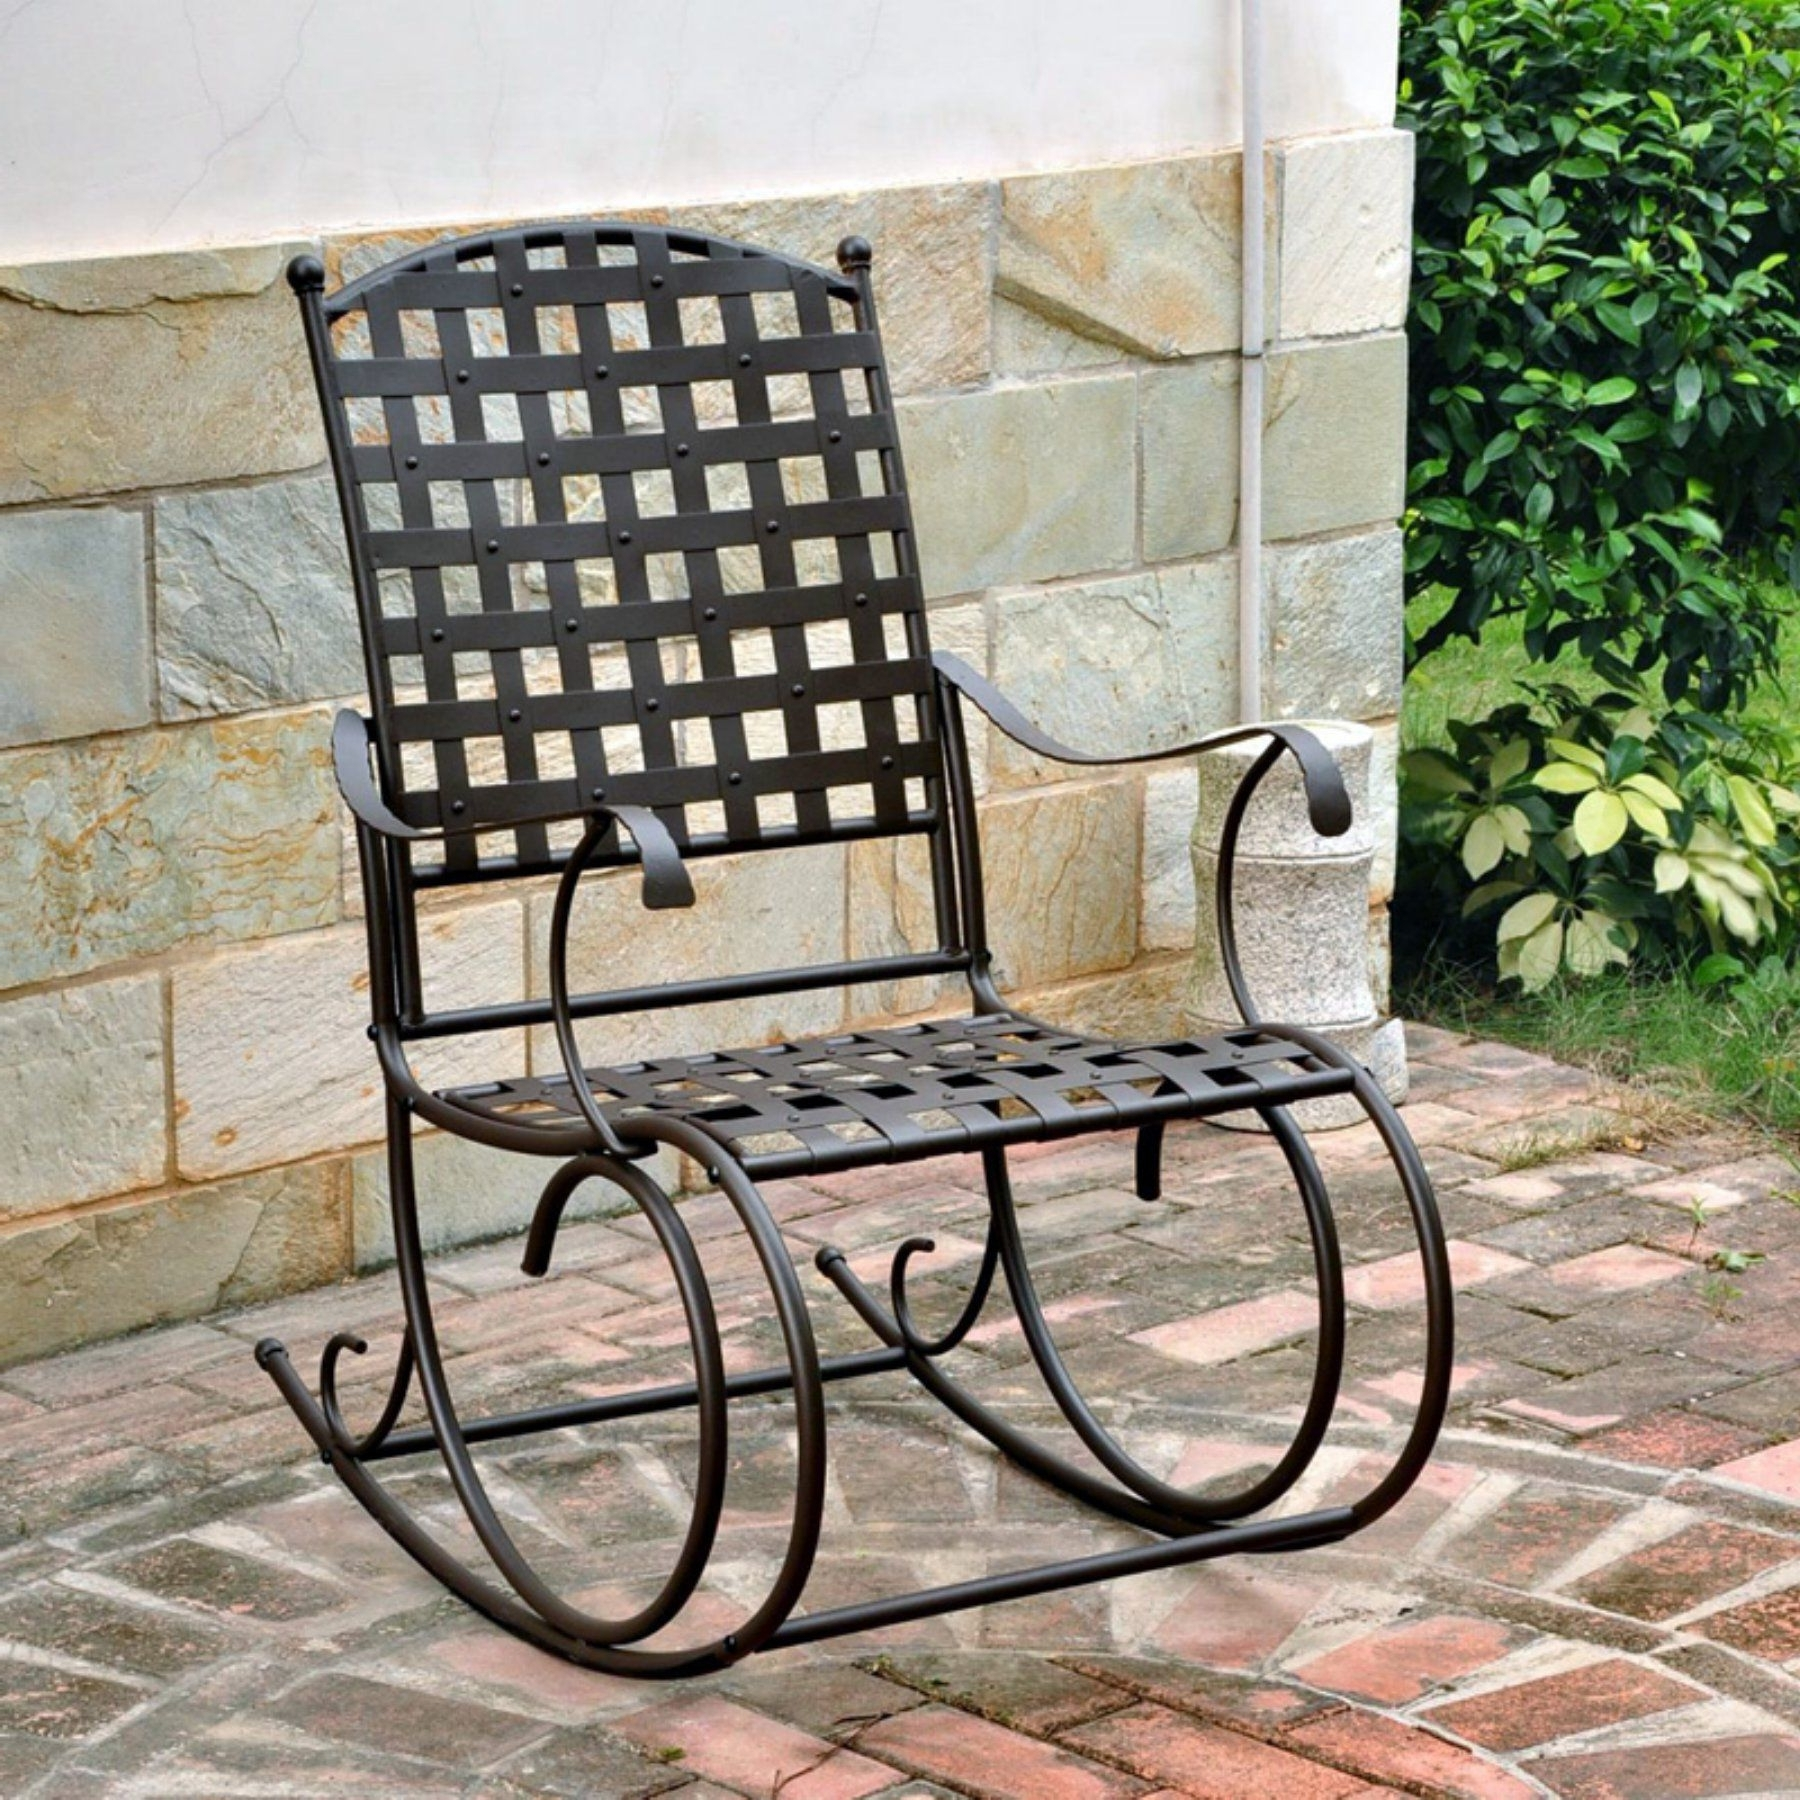 Outdoor International Caravan Santa Fe Iron Metal Patio Rocker In Famous Wrought Iron Patio Rocking Chairs (View 17 of 20)